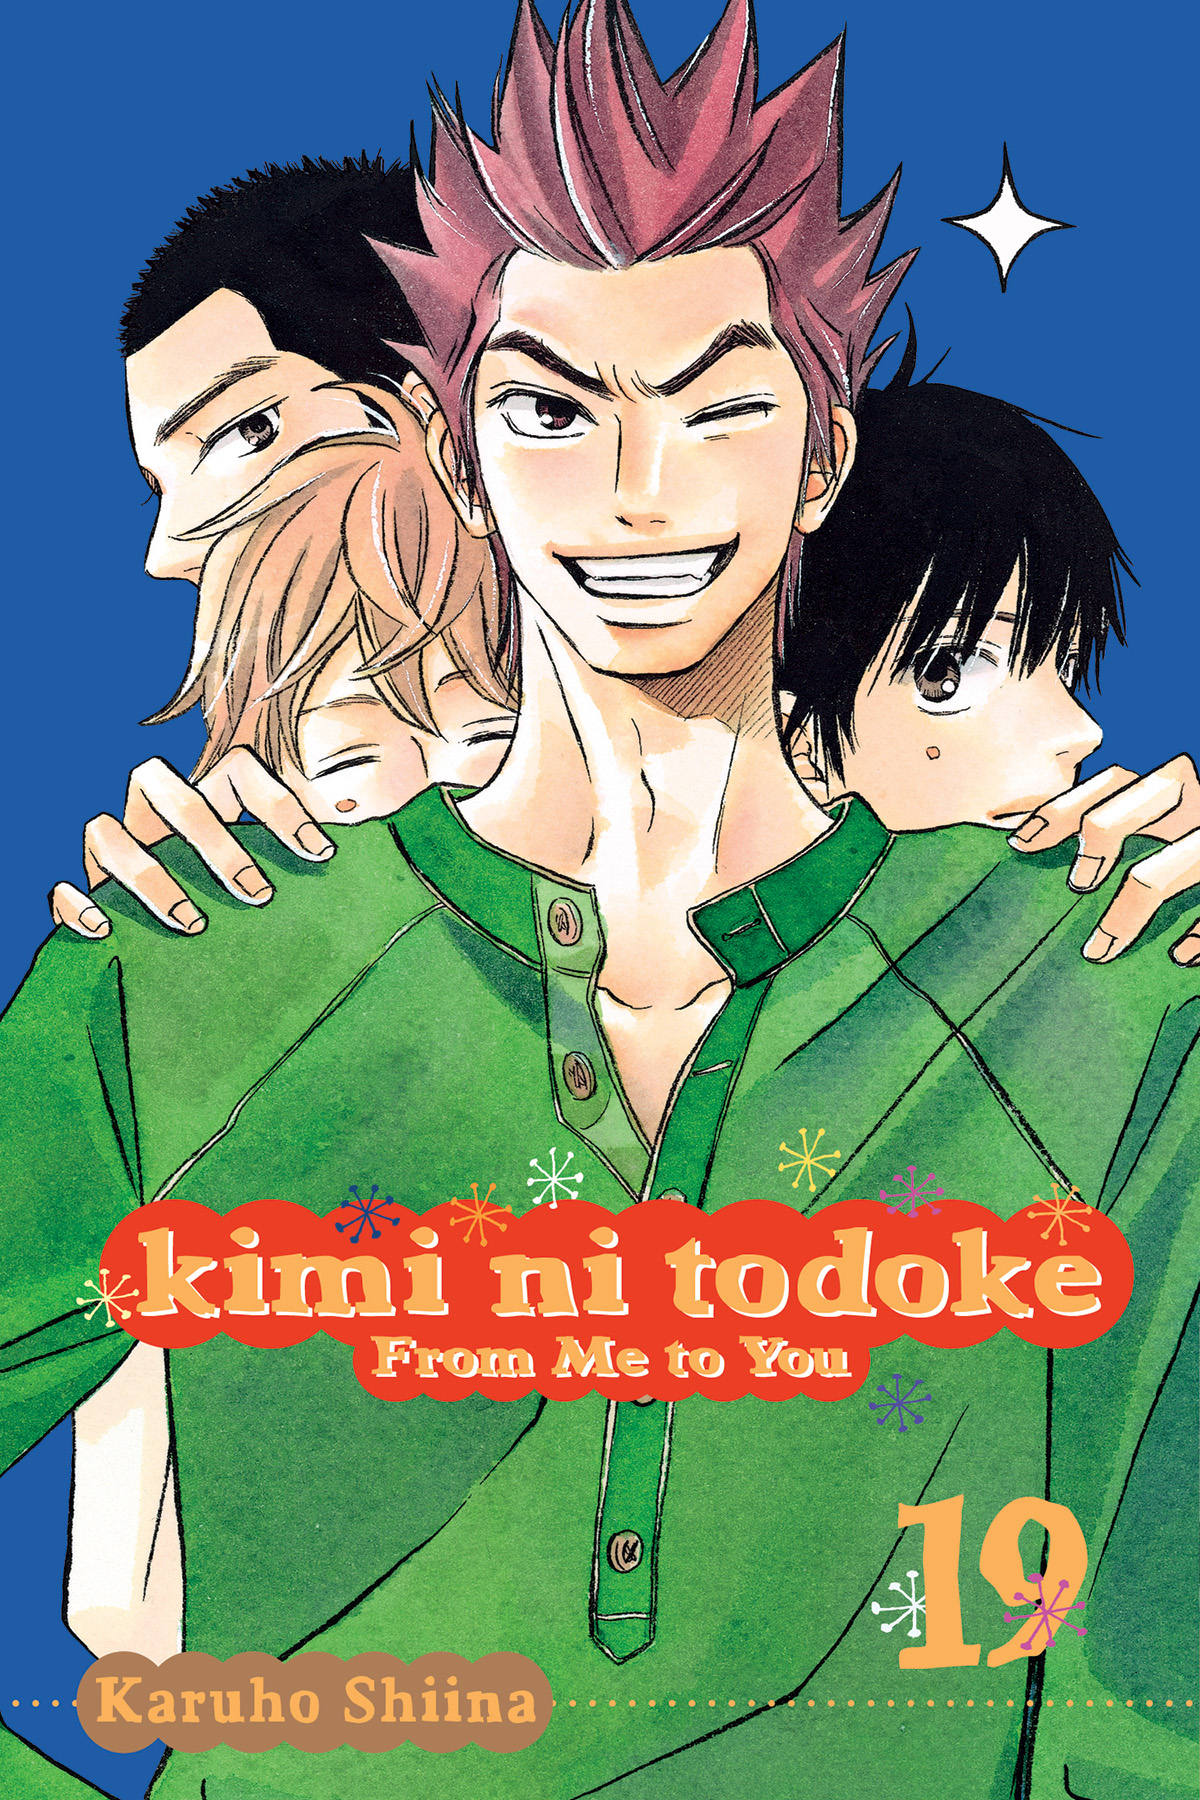 KIMI NI TODOKE GN VOL 19 FROM ME TO YOU